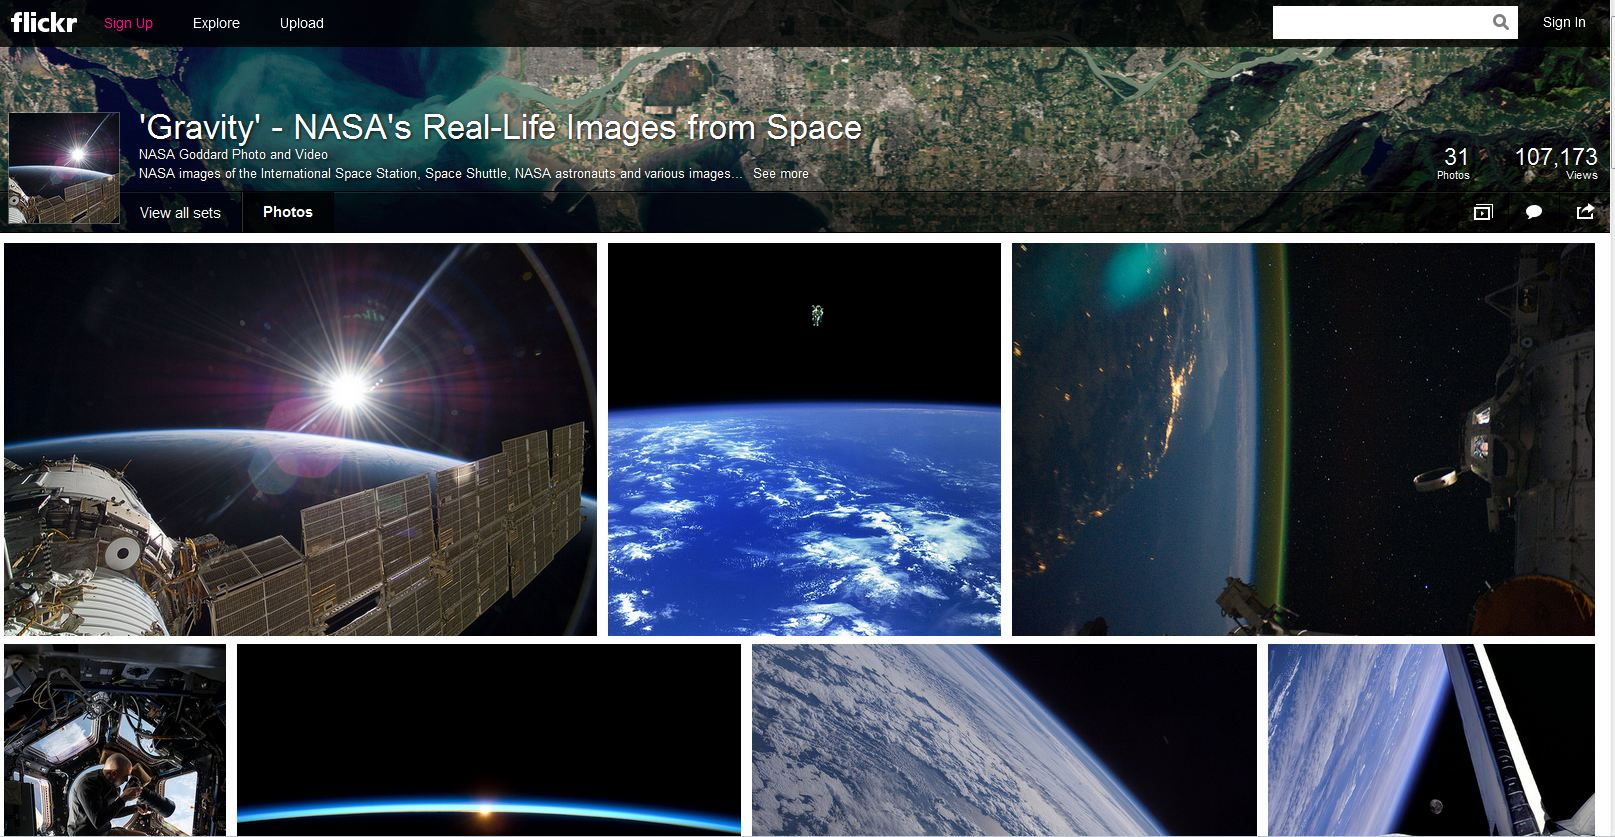 2014-03-03 14_59_17-'Gravity' - NASA's Real-Life Images from Space - a set on Flickr